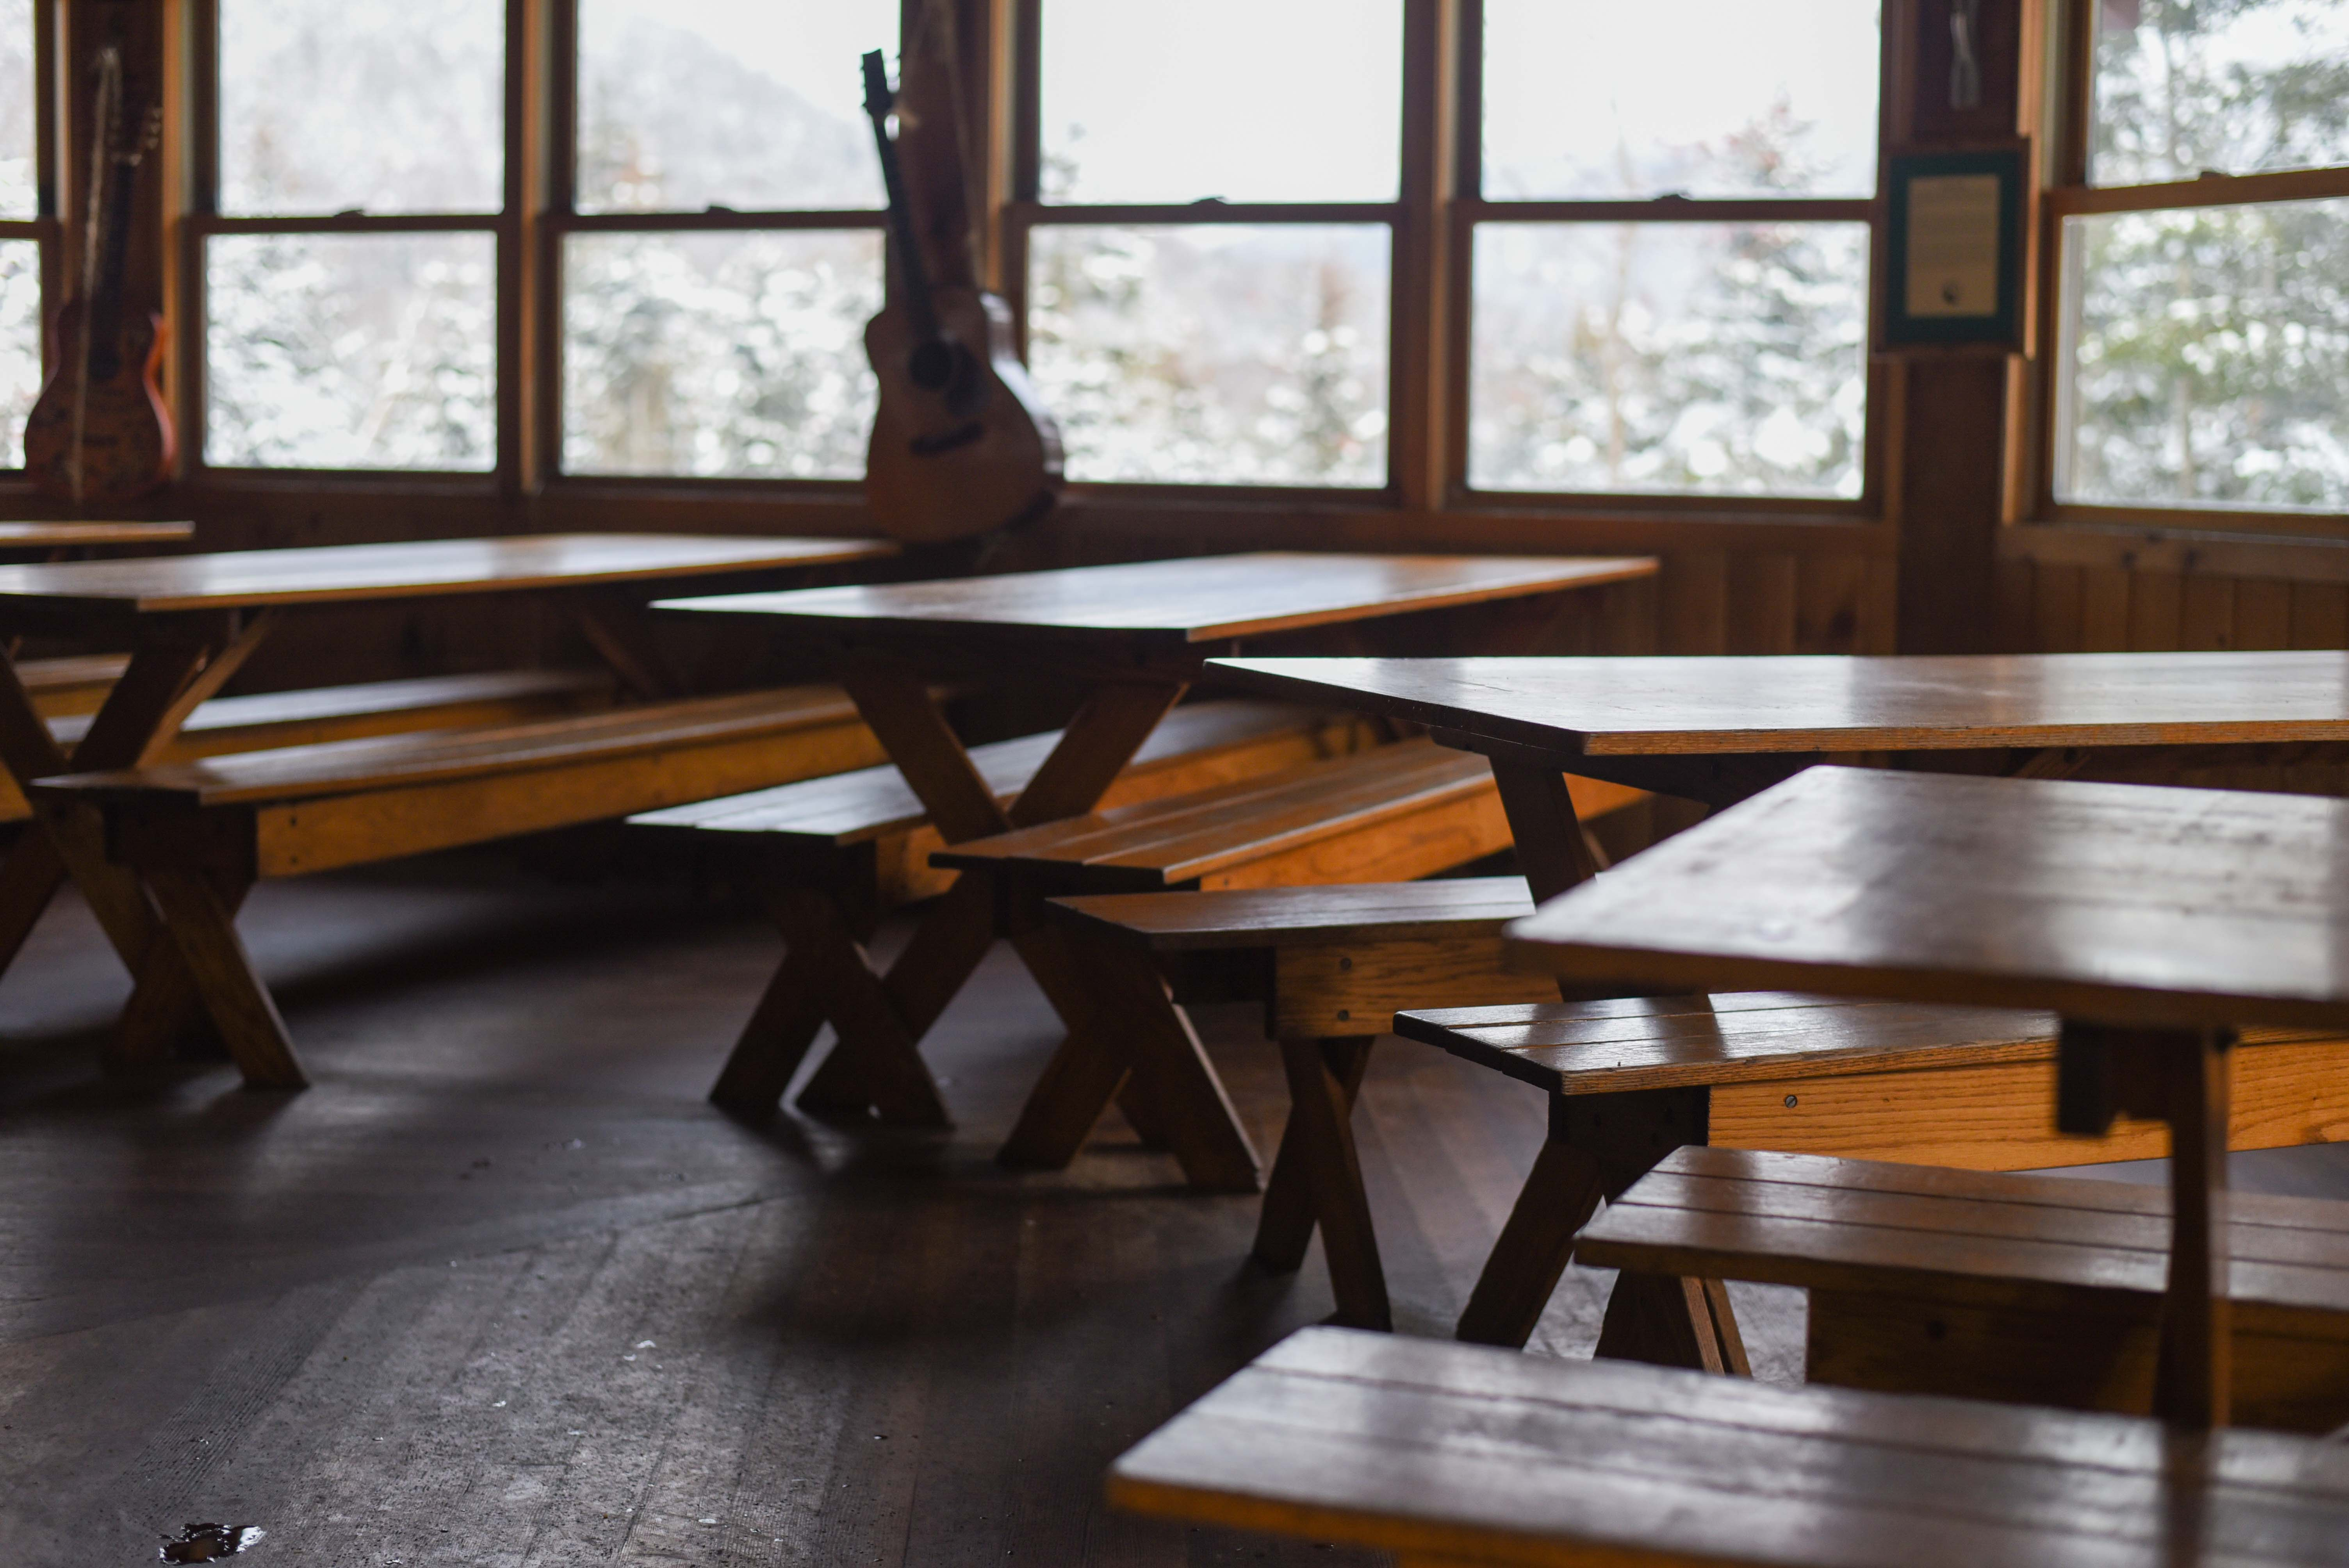 The picnic tables inside the main building hugging the windows